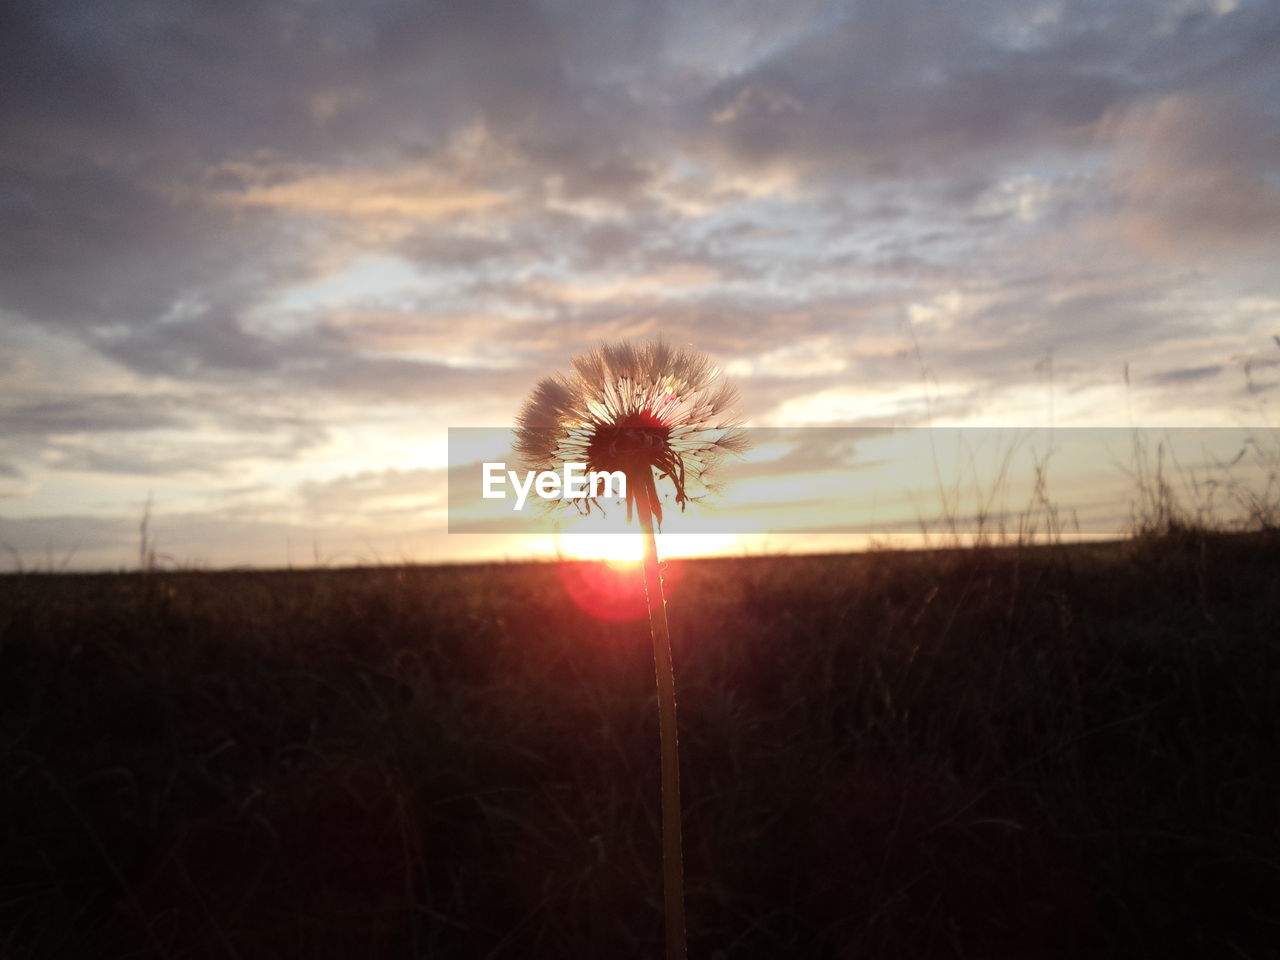 sunset, field, flower, nature, growth, beauty in nature, sky, silhouette, landscape, outdoors, tranquility, dusk, plant, tranquil scene, sun, fragility, cloud - sky, no people, grass, rural scene, scenics, flower head, freshness, close-up, day